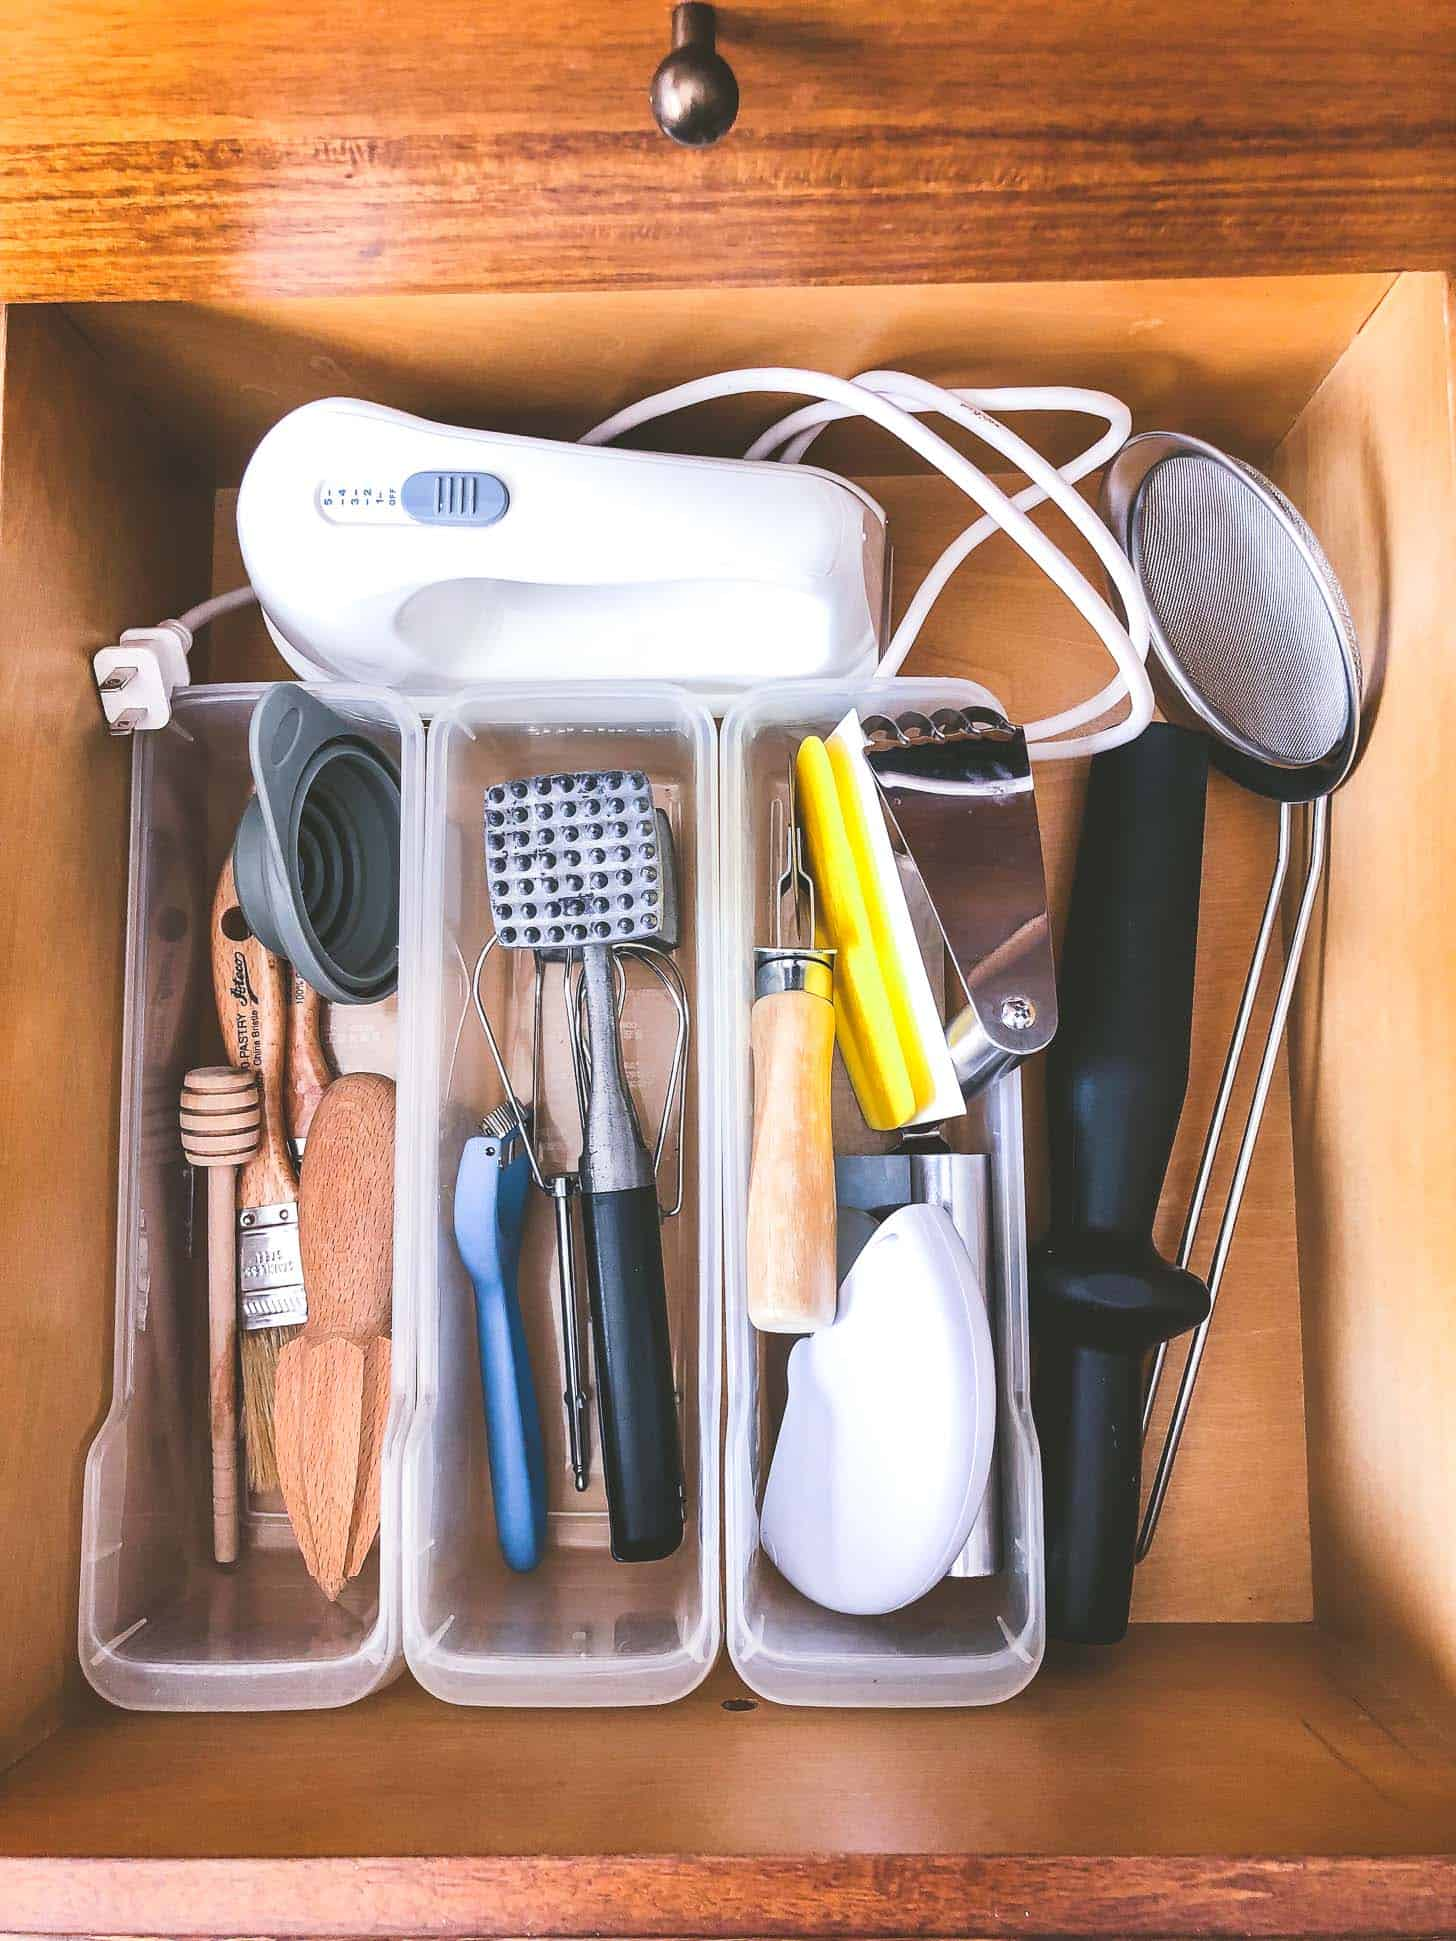 a drawer with utensils and tools